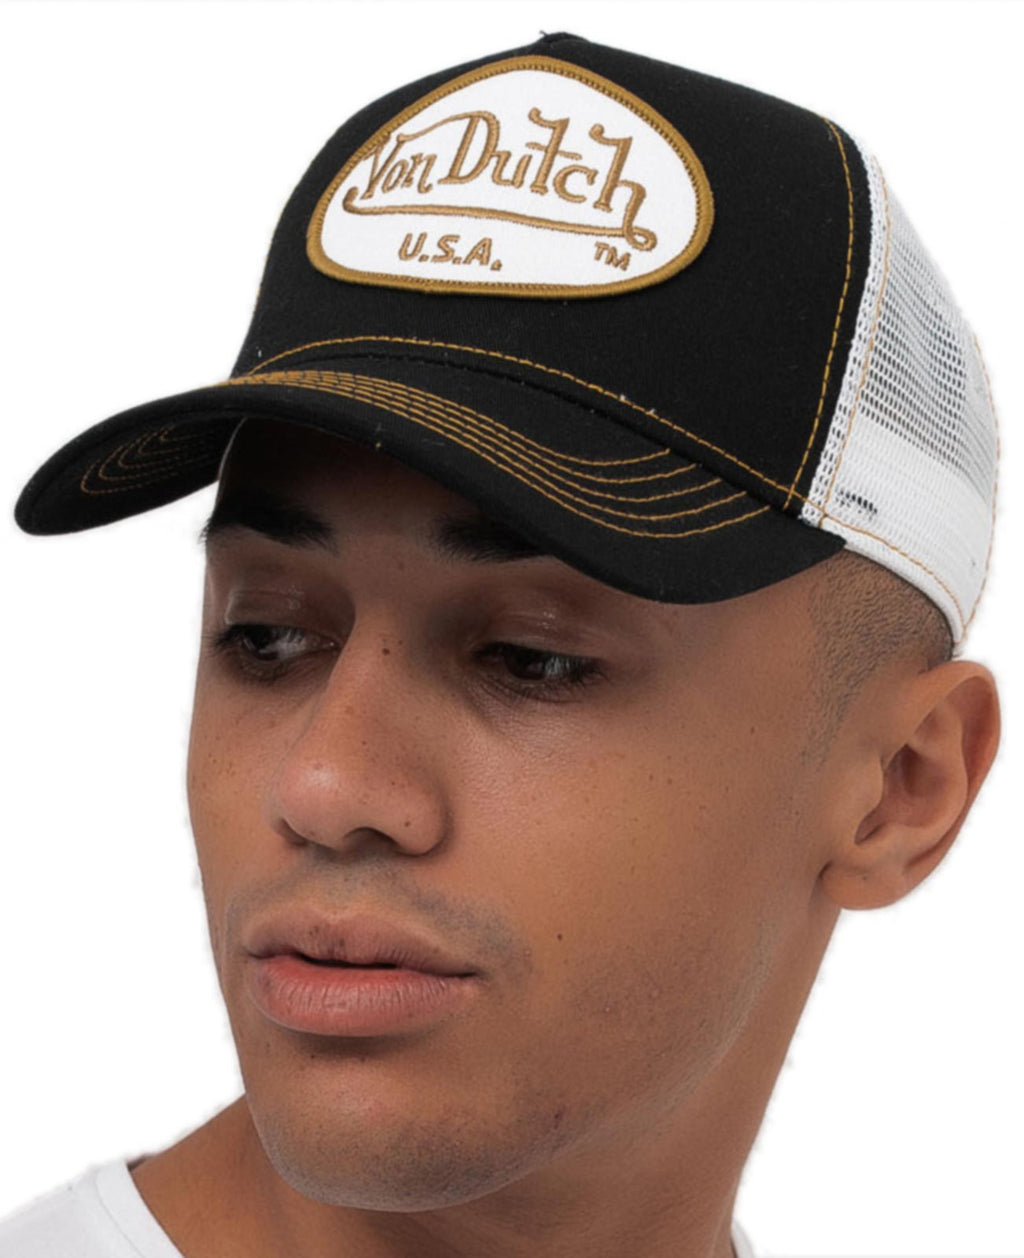 Von Dutch Trucker Snapback Baseball Cap	Black/Gold